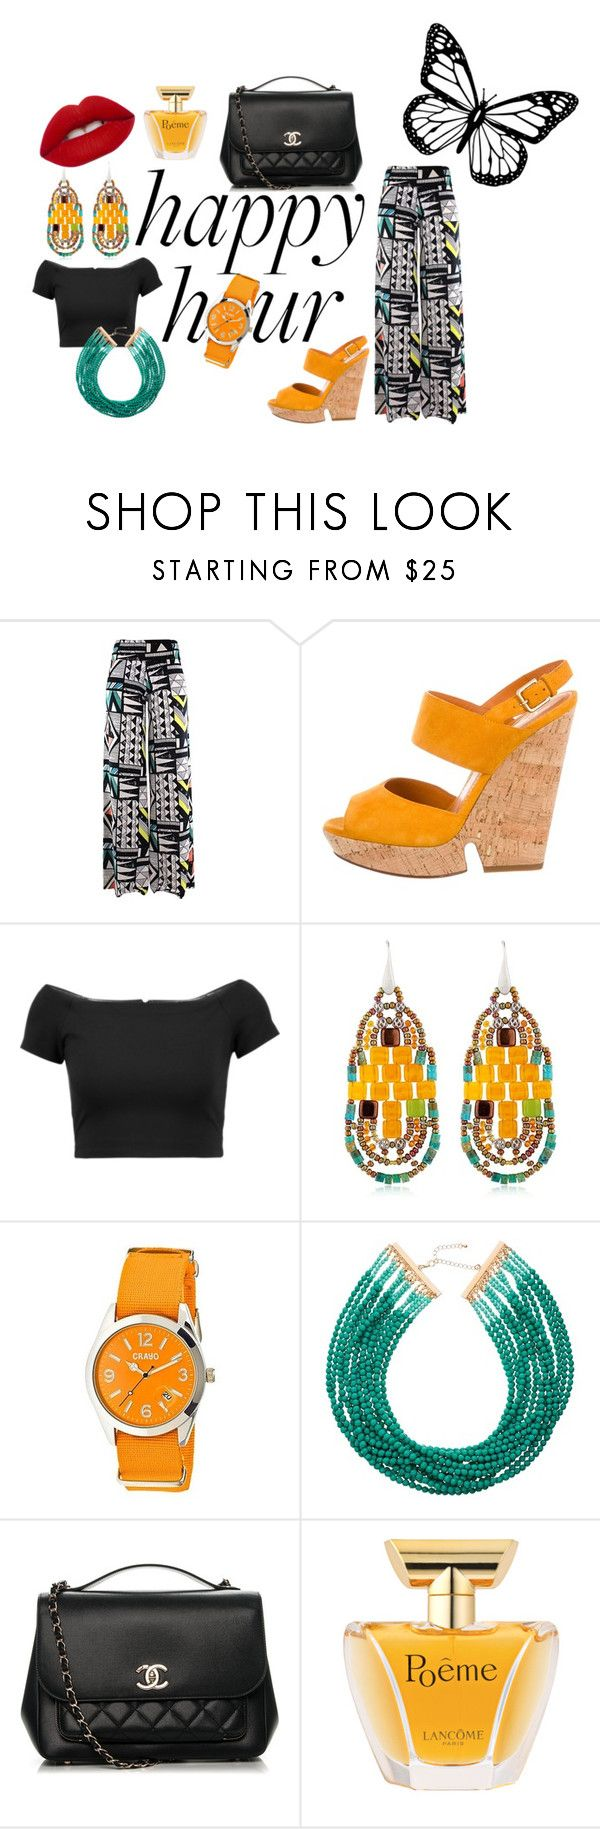 """#happyhour"" by hajer-bh ❤ liked on Polyvore featuring Yves Saint Laurent, Alice + Olivia, Ziio, Crayo, John Lewis, Chanel, Lancôme and Lime Crime"